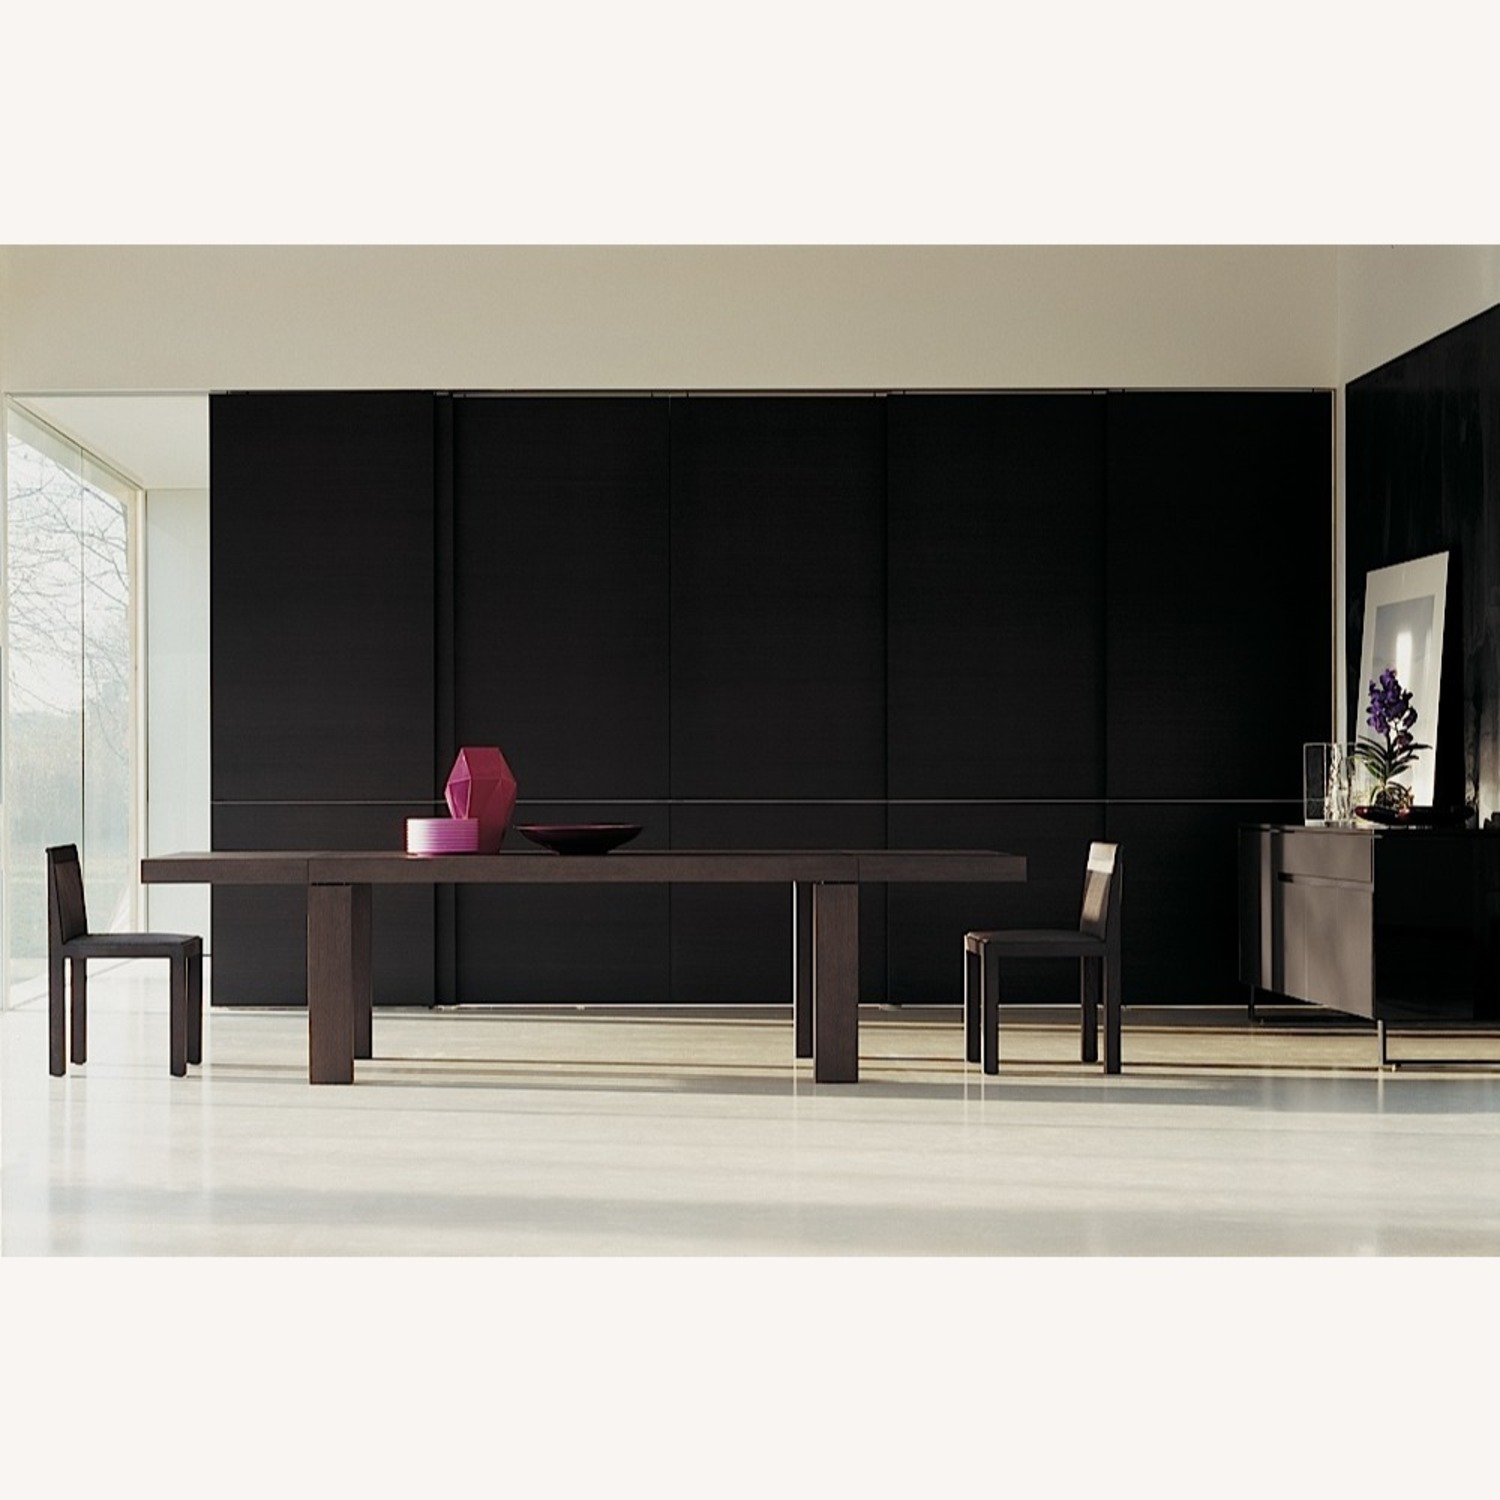 Molteni Luca Meda Extendable Dining Table - image-2